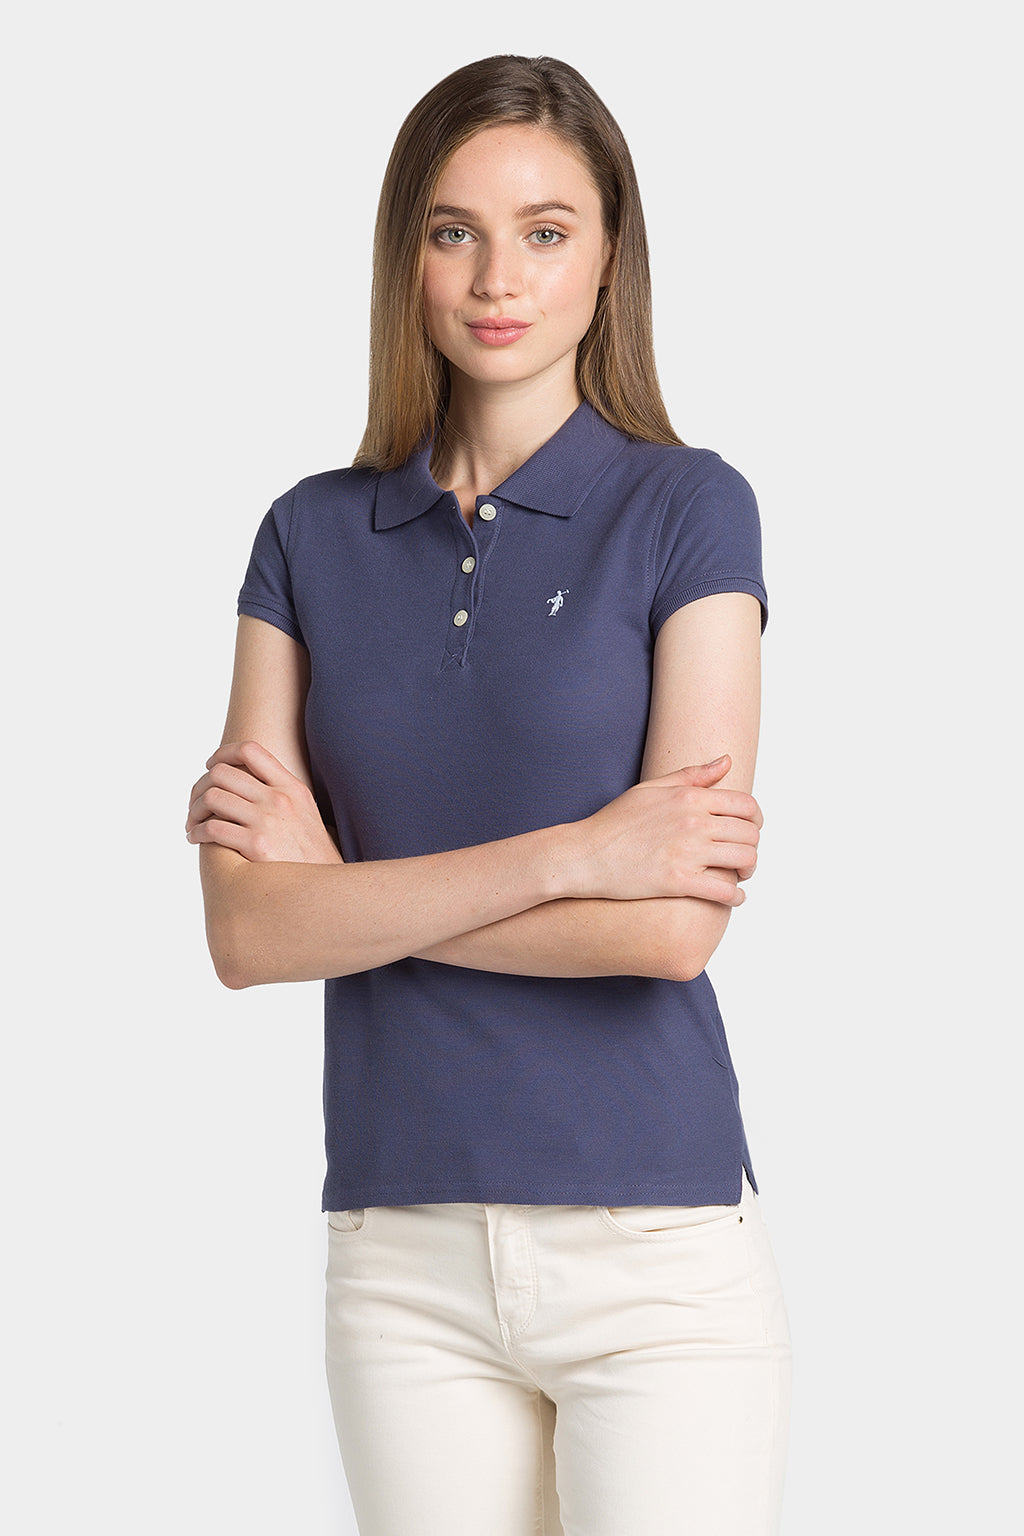 Polo MINI RIGBY Azul Denim